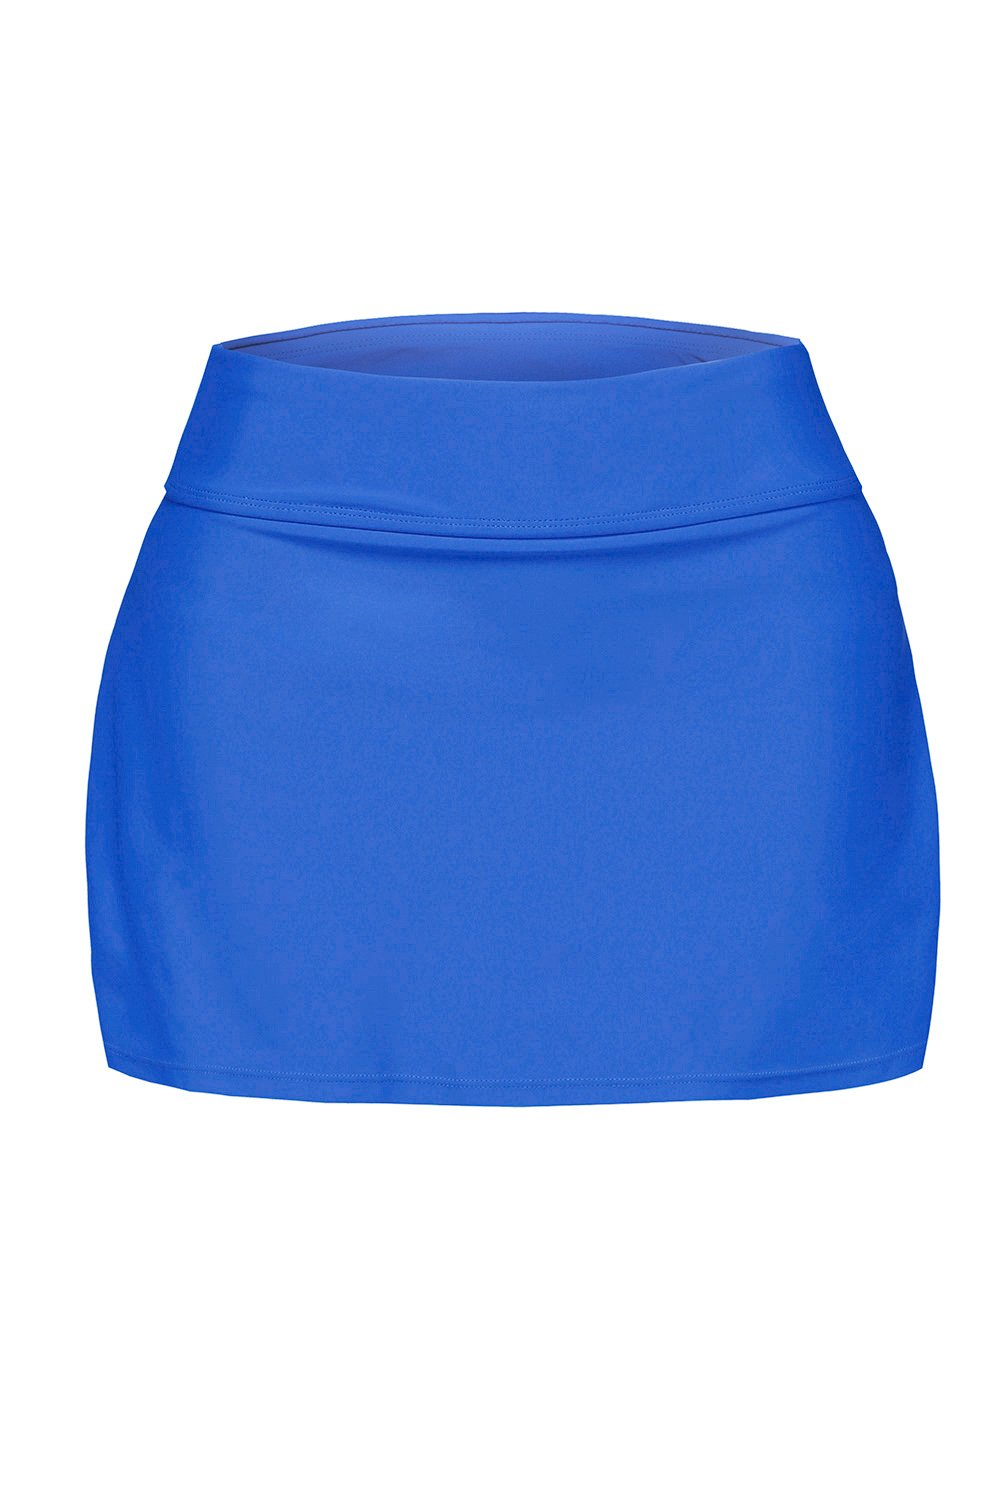 Itsmode Women's Sexy Solid Waistband Swim Skort Bikini Skirt Tankini Bottoms Juniors Swimsuits Blue Small Size